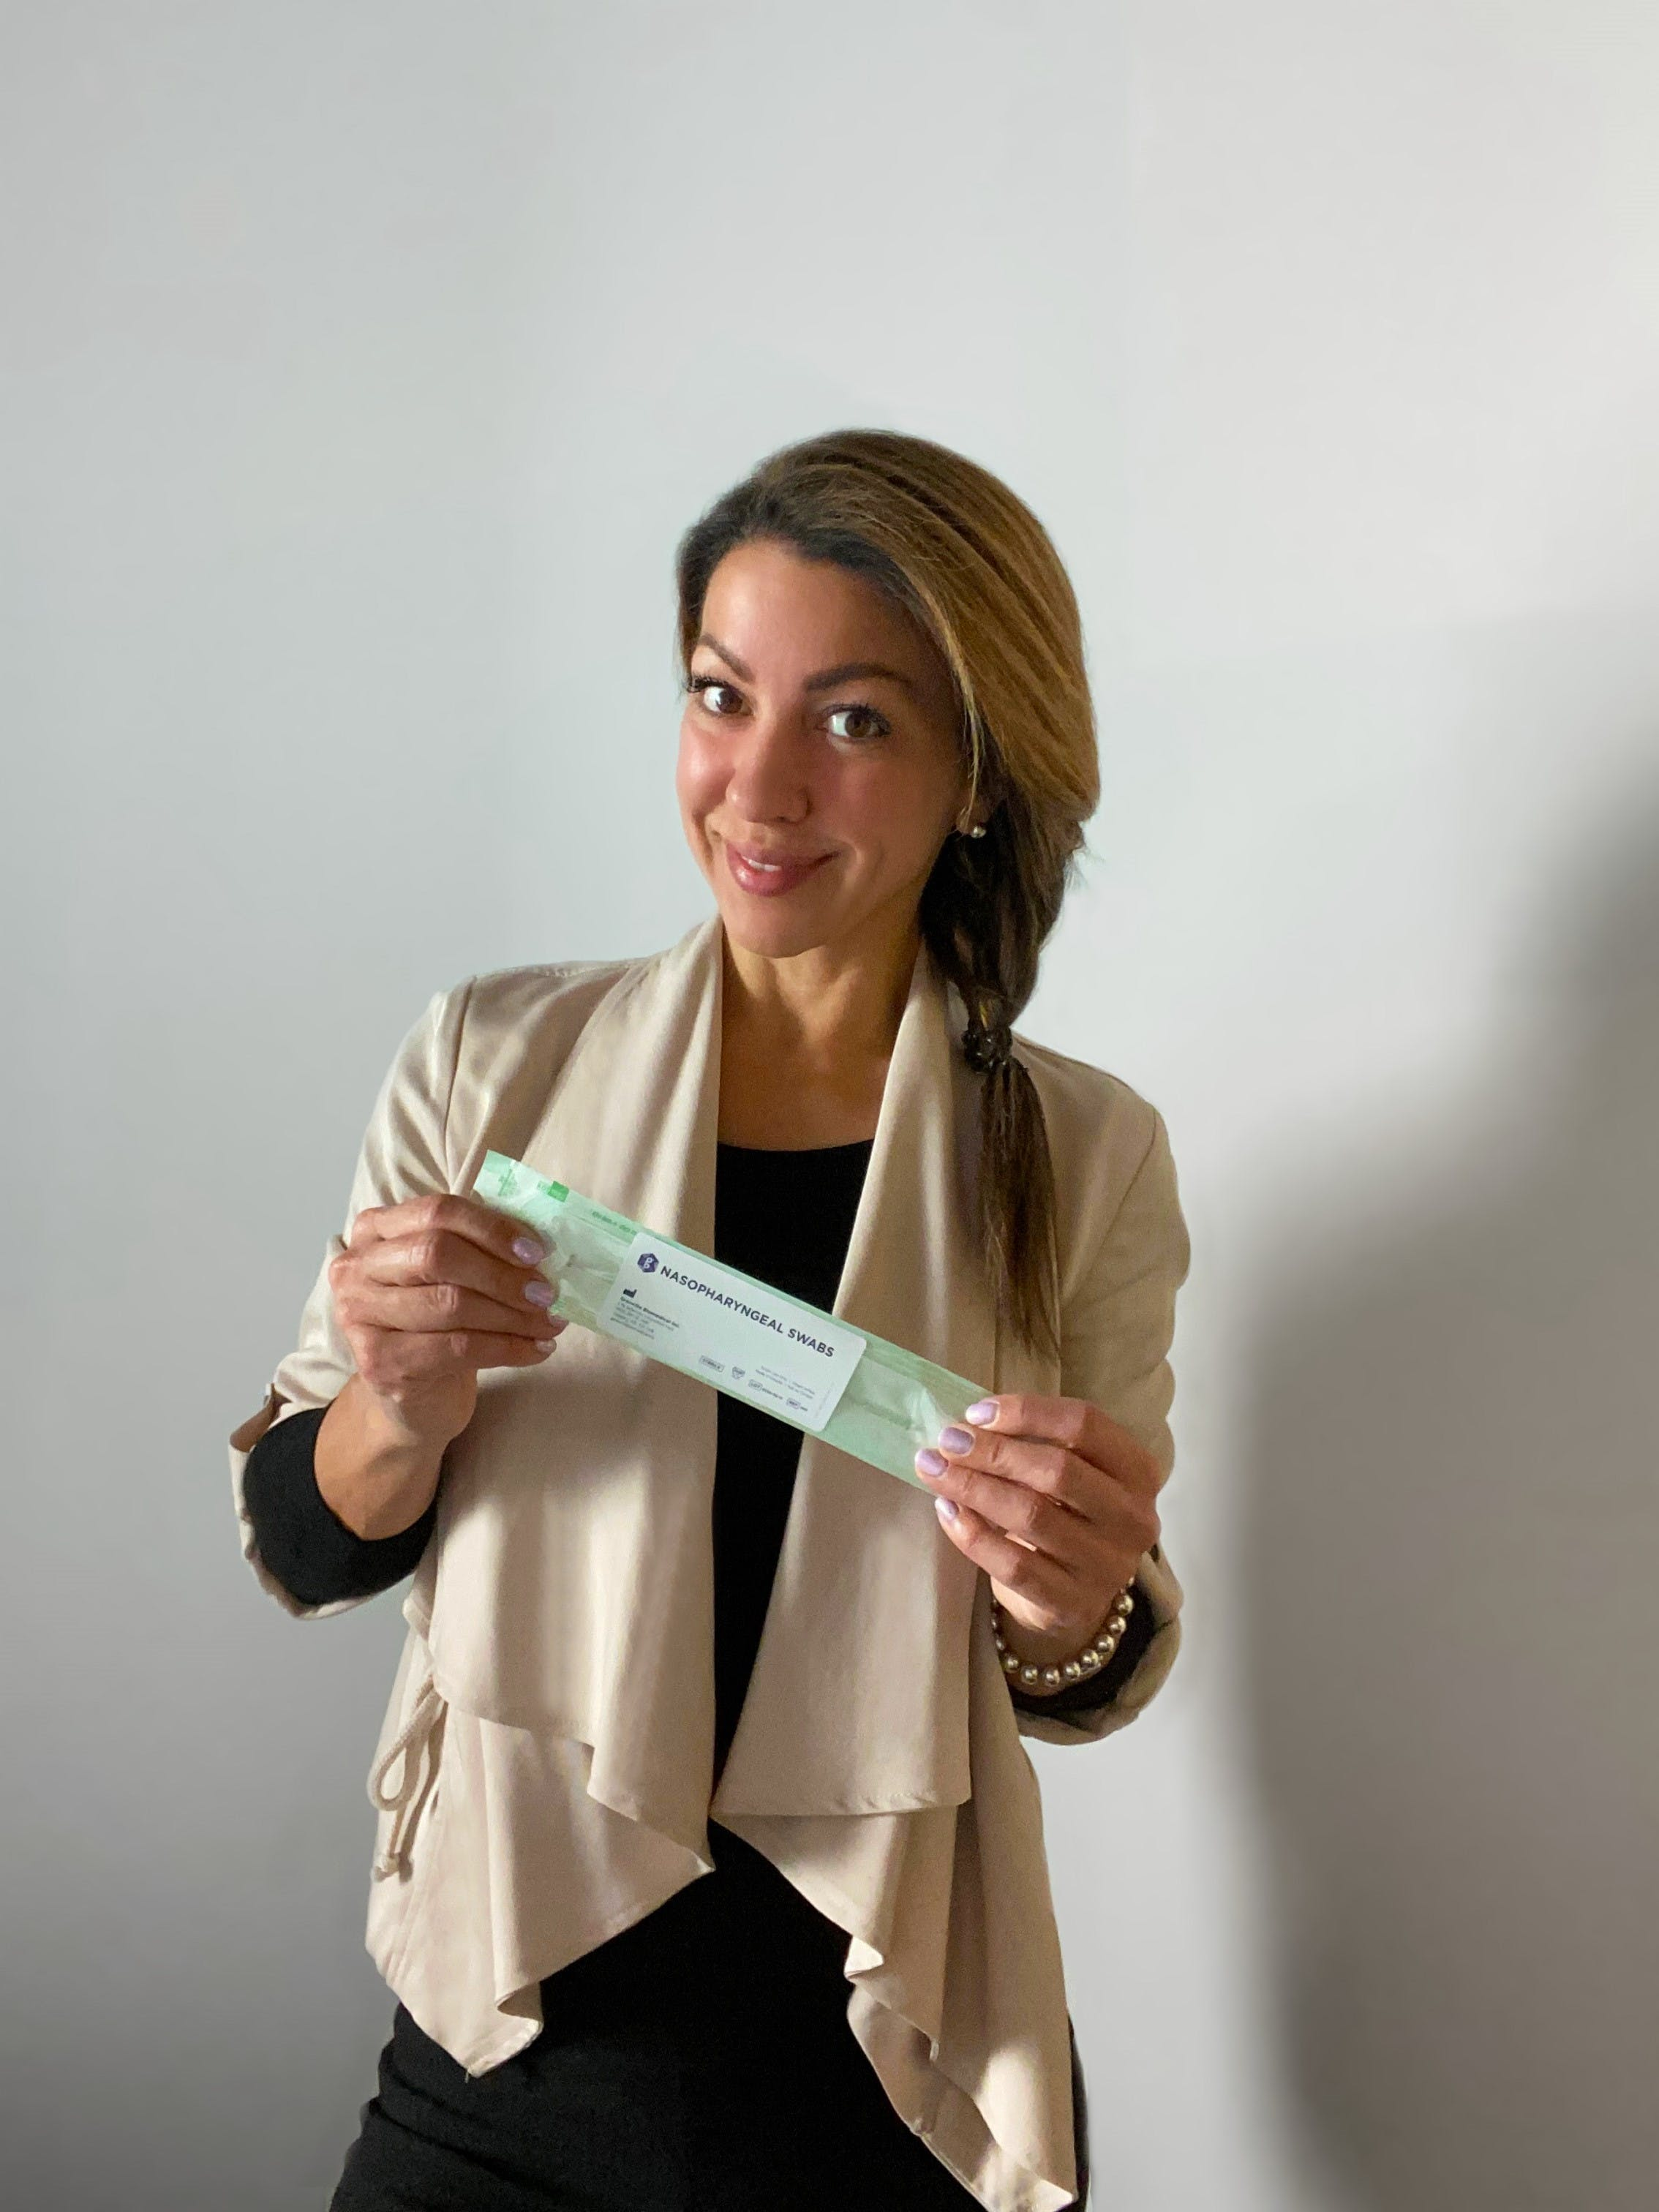 Christine Goudie and her team at Granville Biomedical have successfully developed Health Canada-approved nasopharyngeal swabs for COVID-19 testing after pivoting during the pandemic.